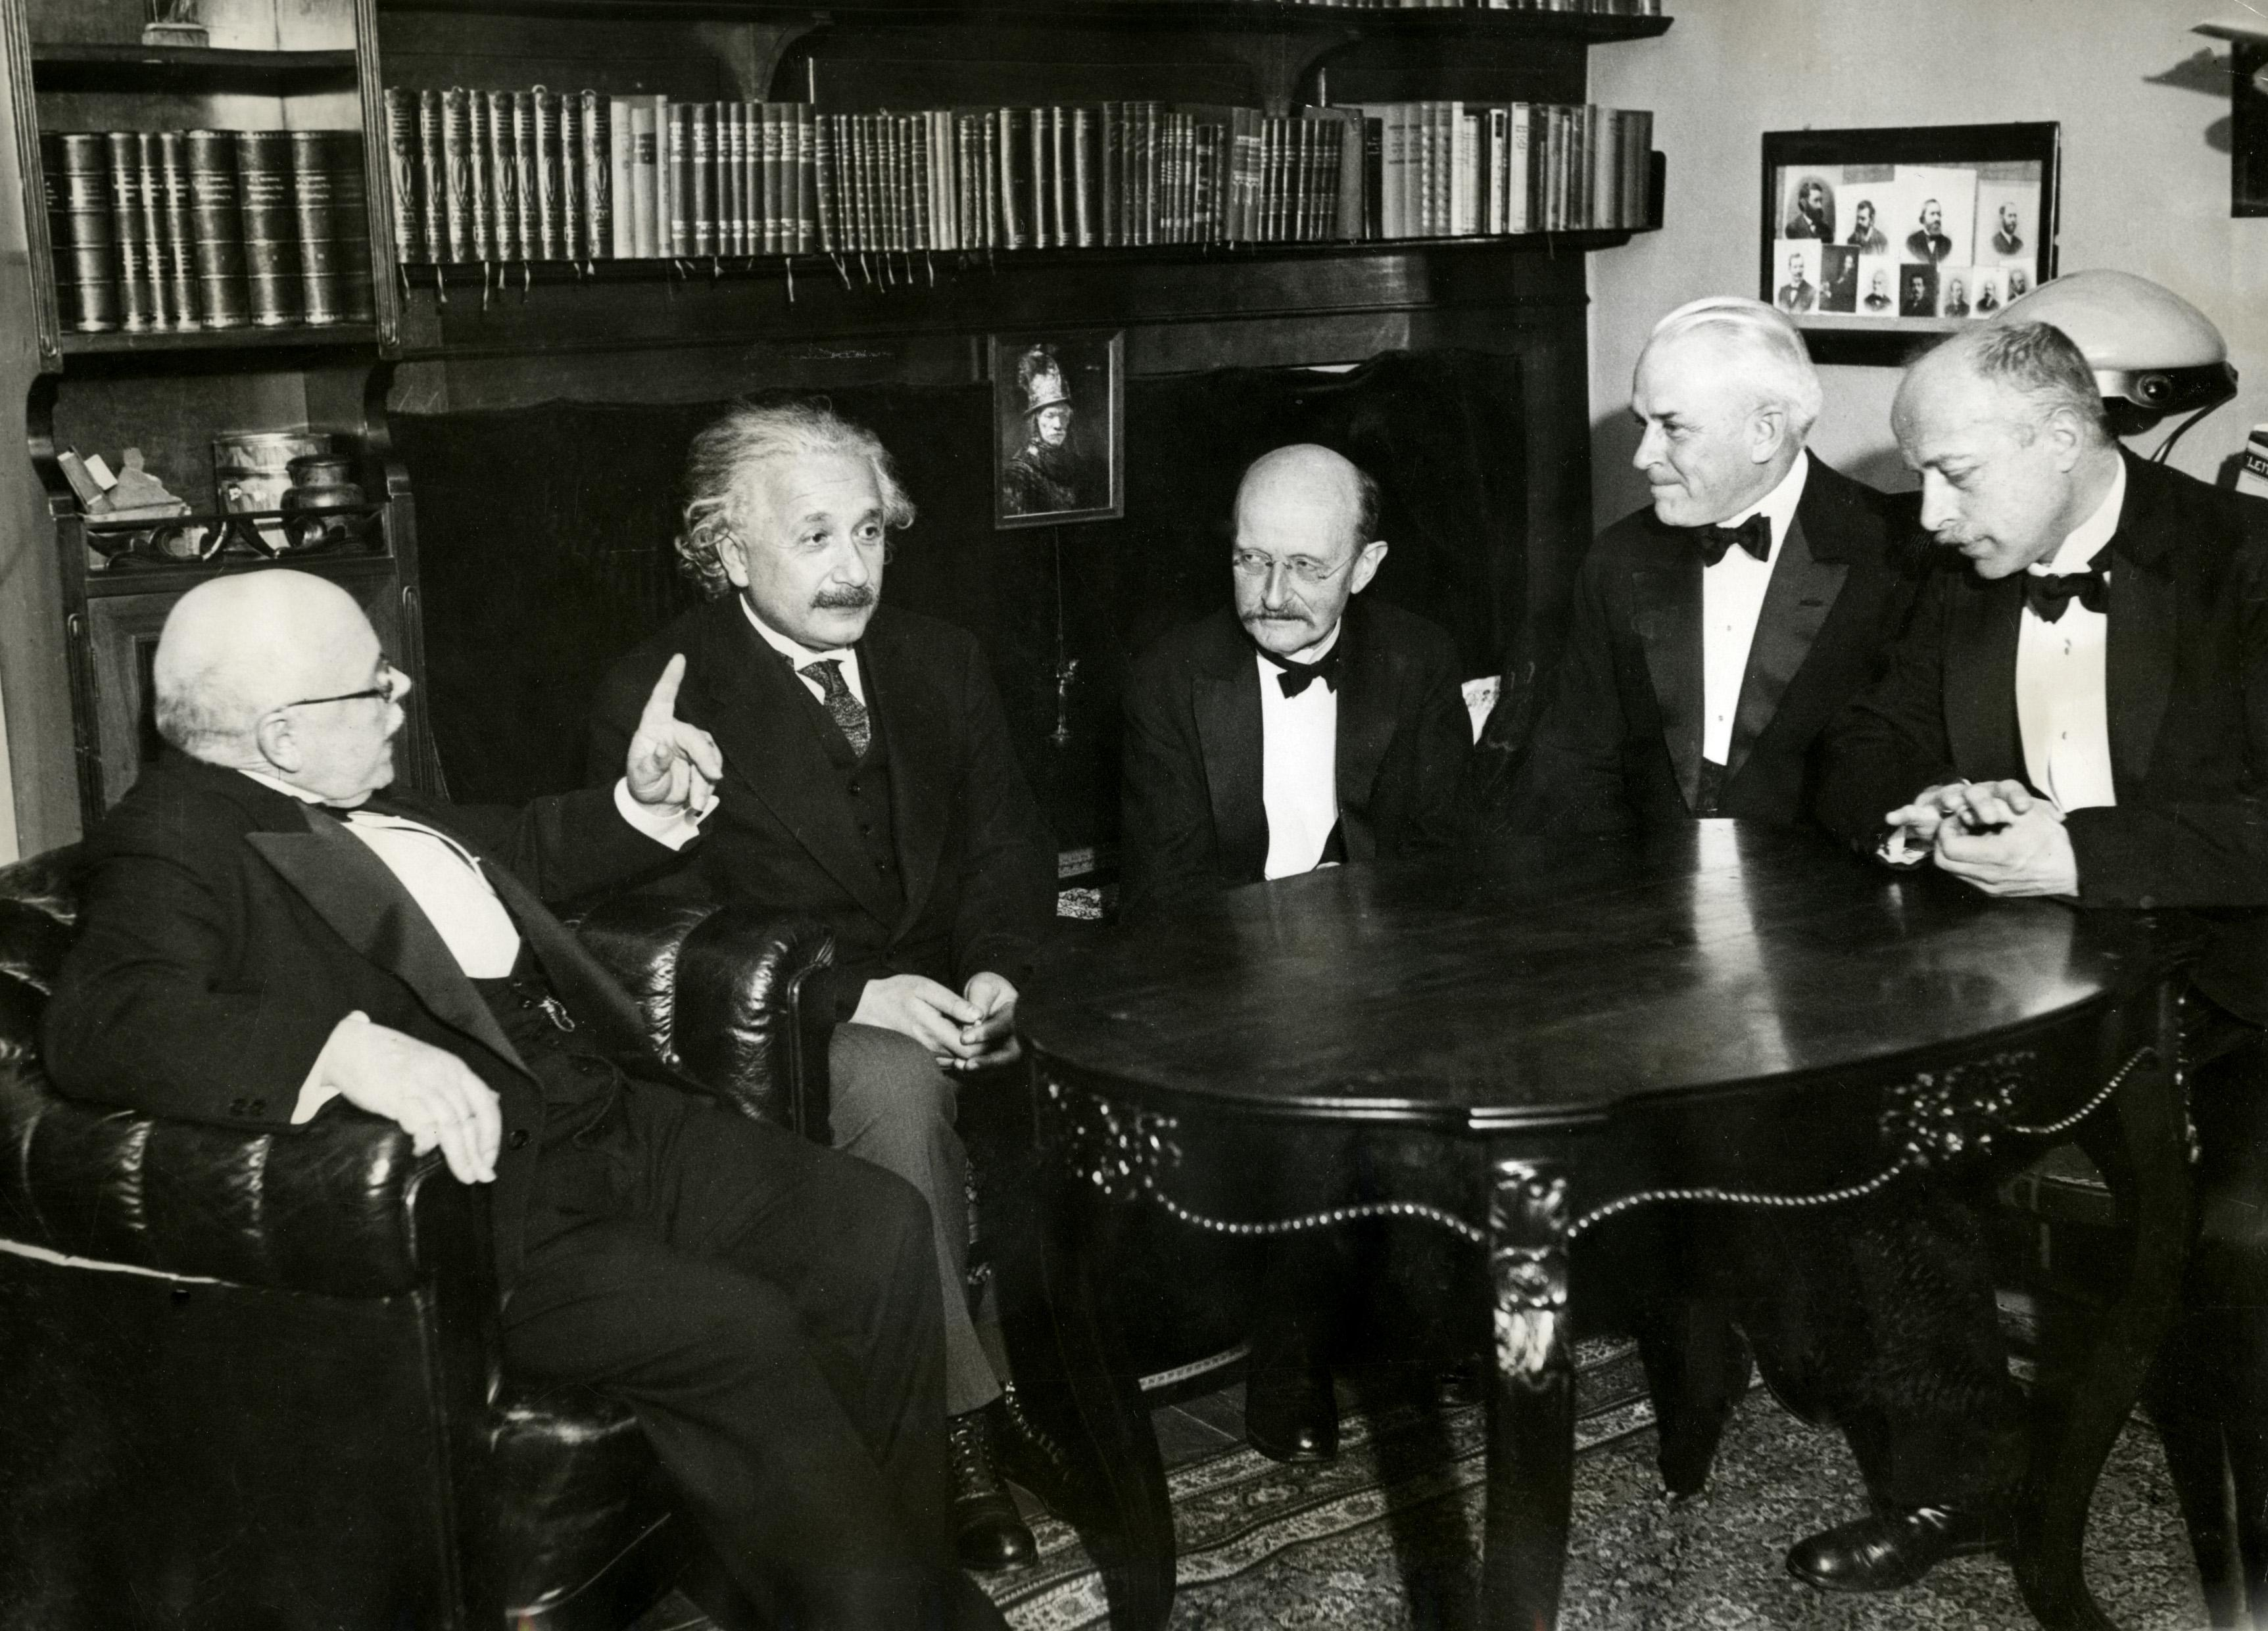 Einstein and Planck